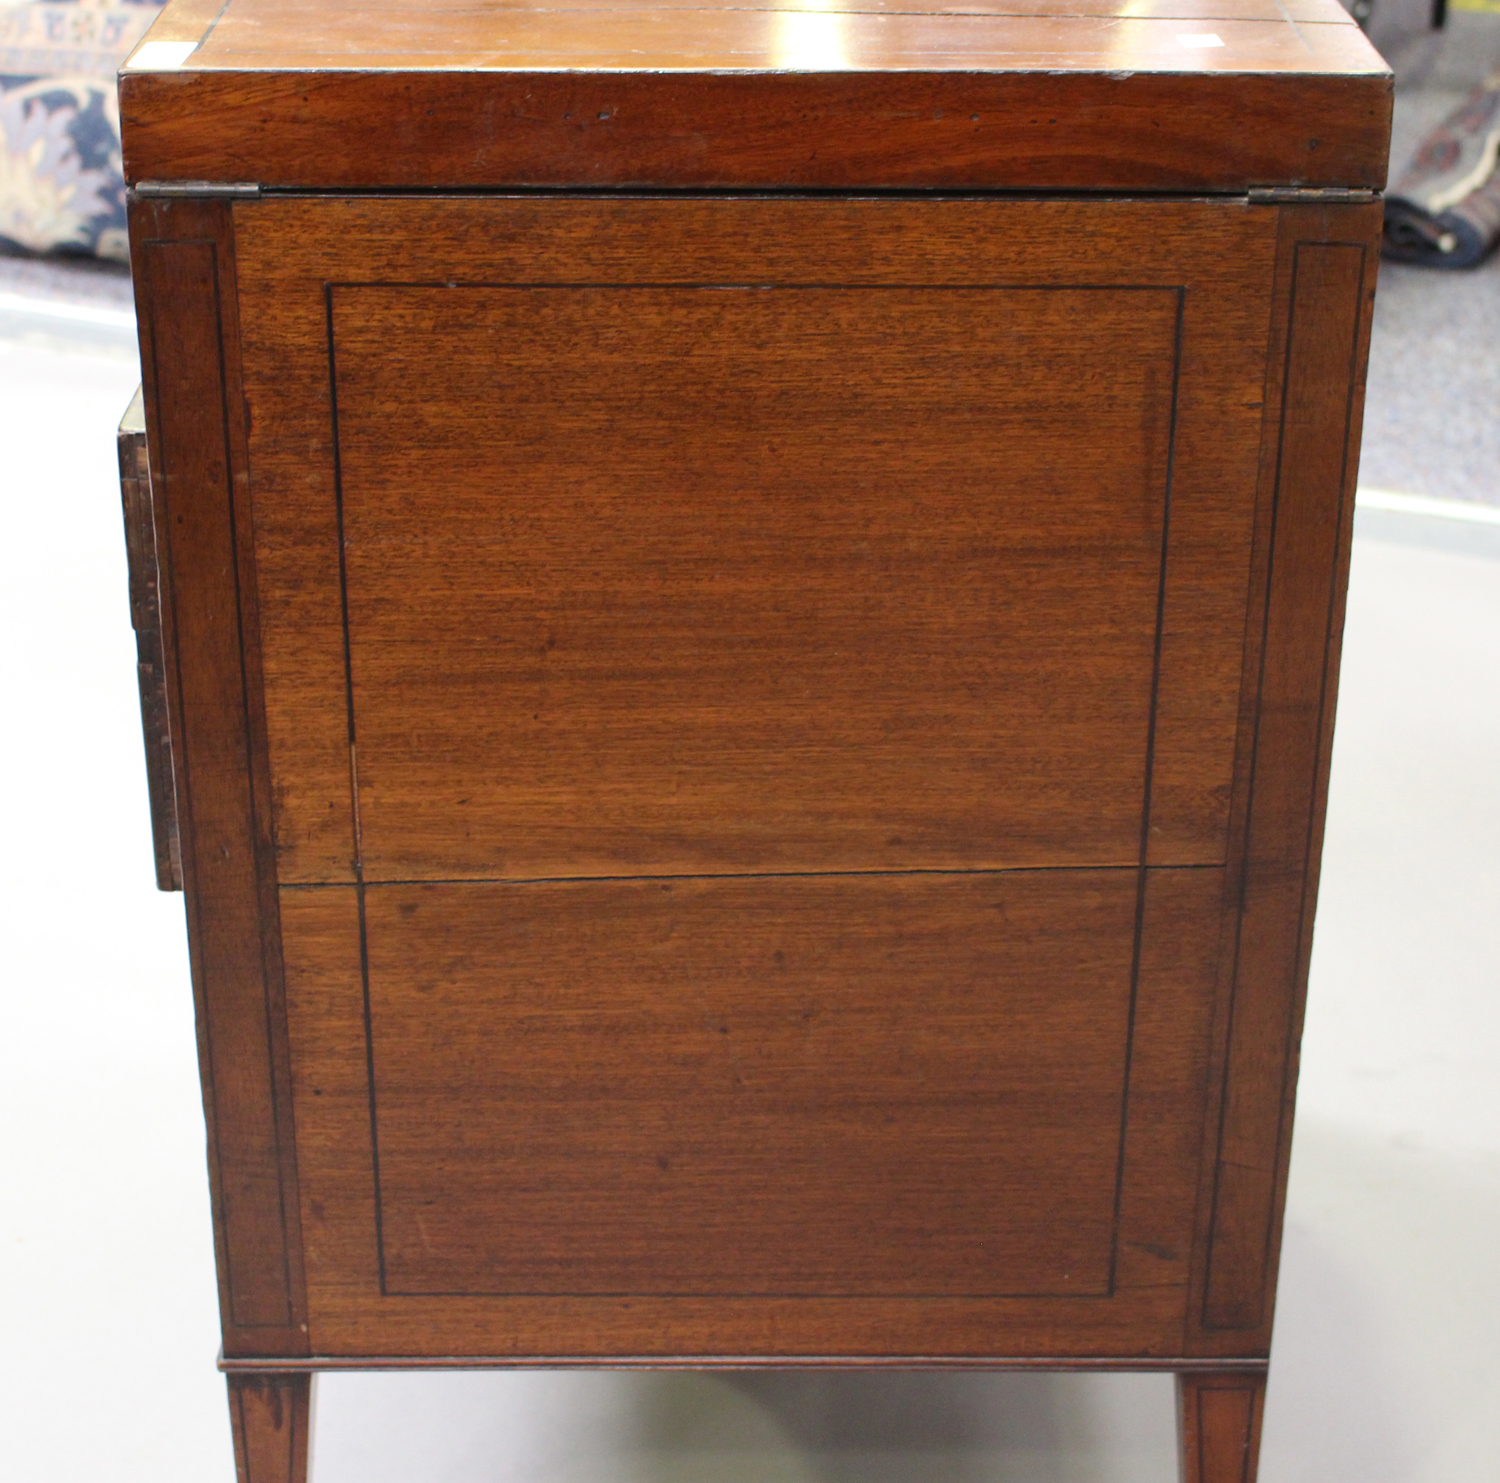 A George III mahogany dressing table, the double hinged top revealing a compartmentalized interior - Image 4 of 6